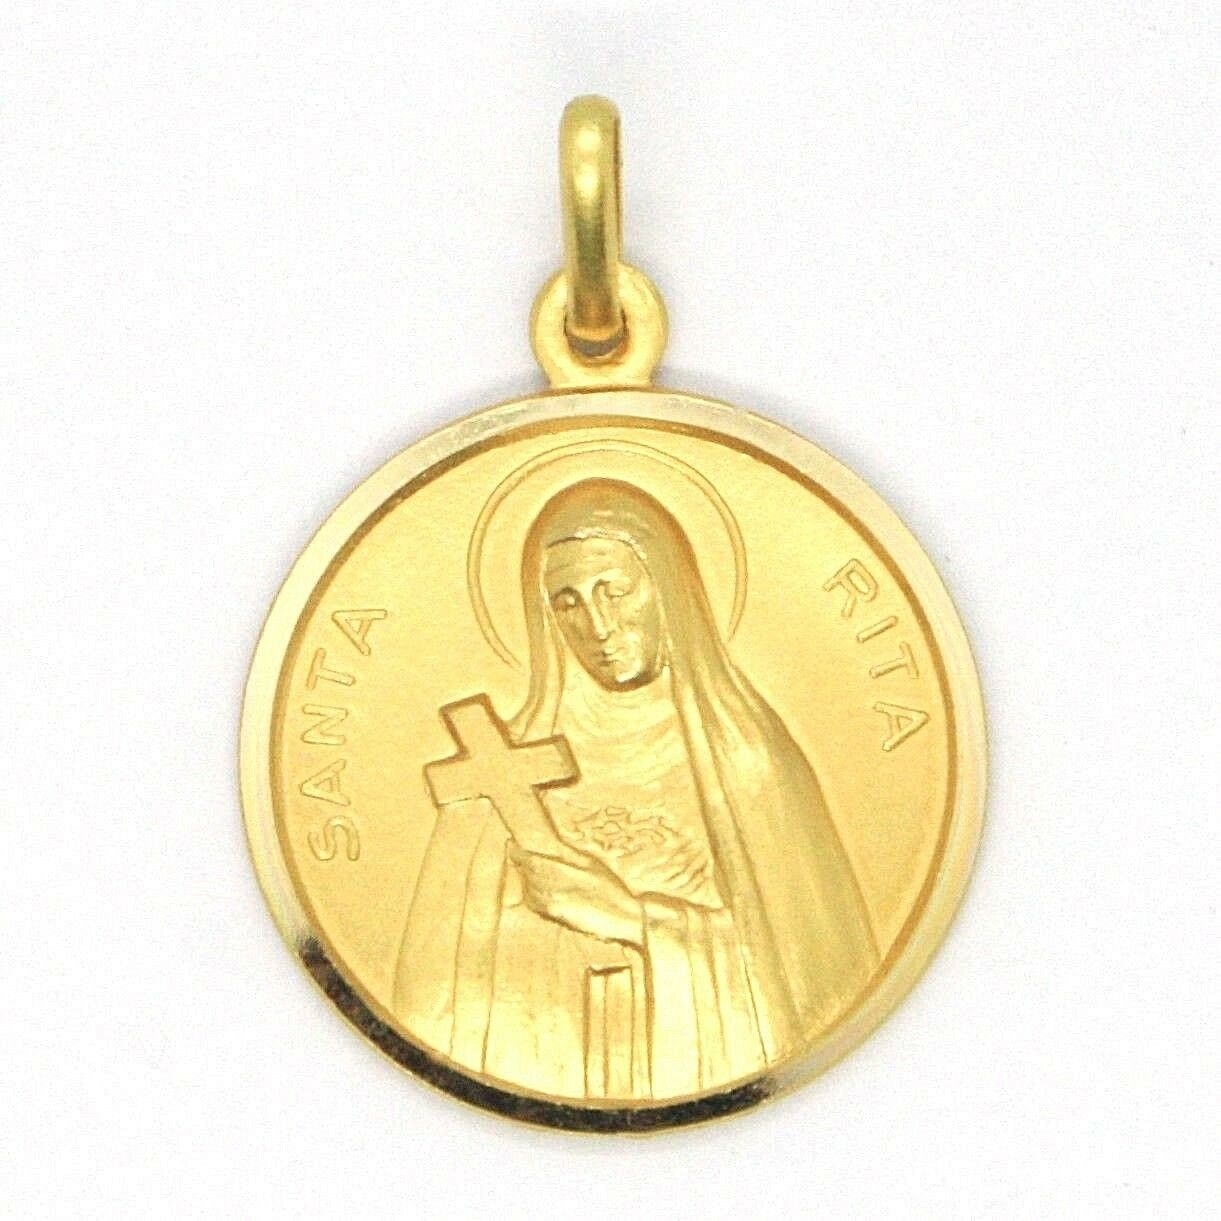 SOLID 18K YELLOW GOLD HOLY ST SAINT SANTA RITA ROUND MEDAL MADE IN ITALY, 15 MM